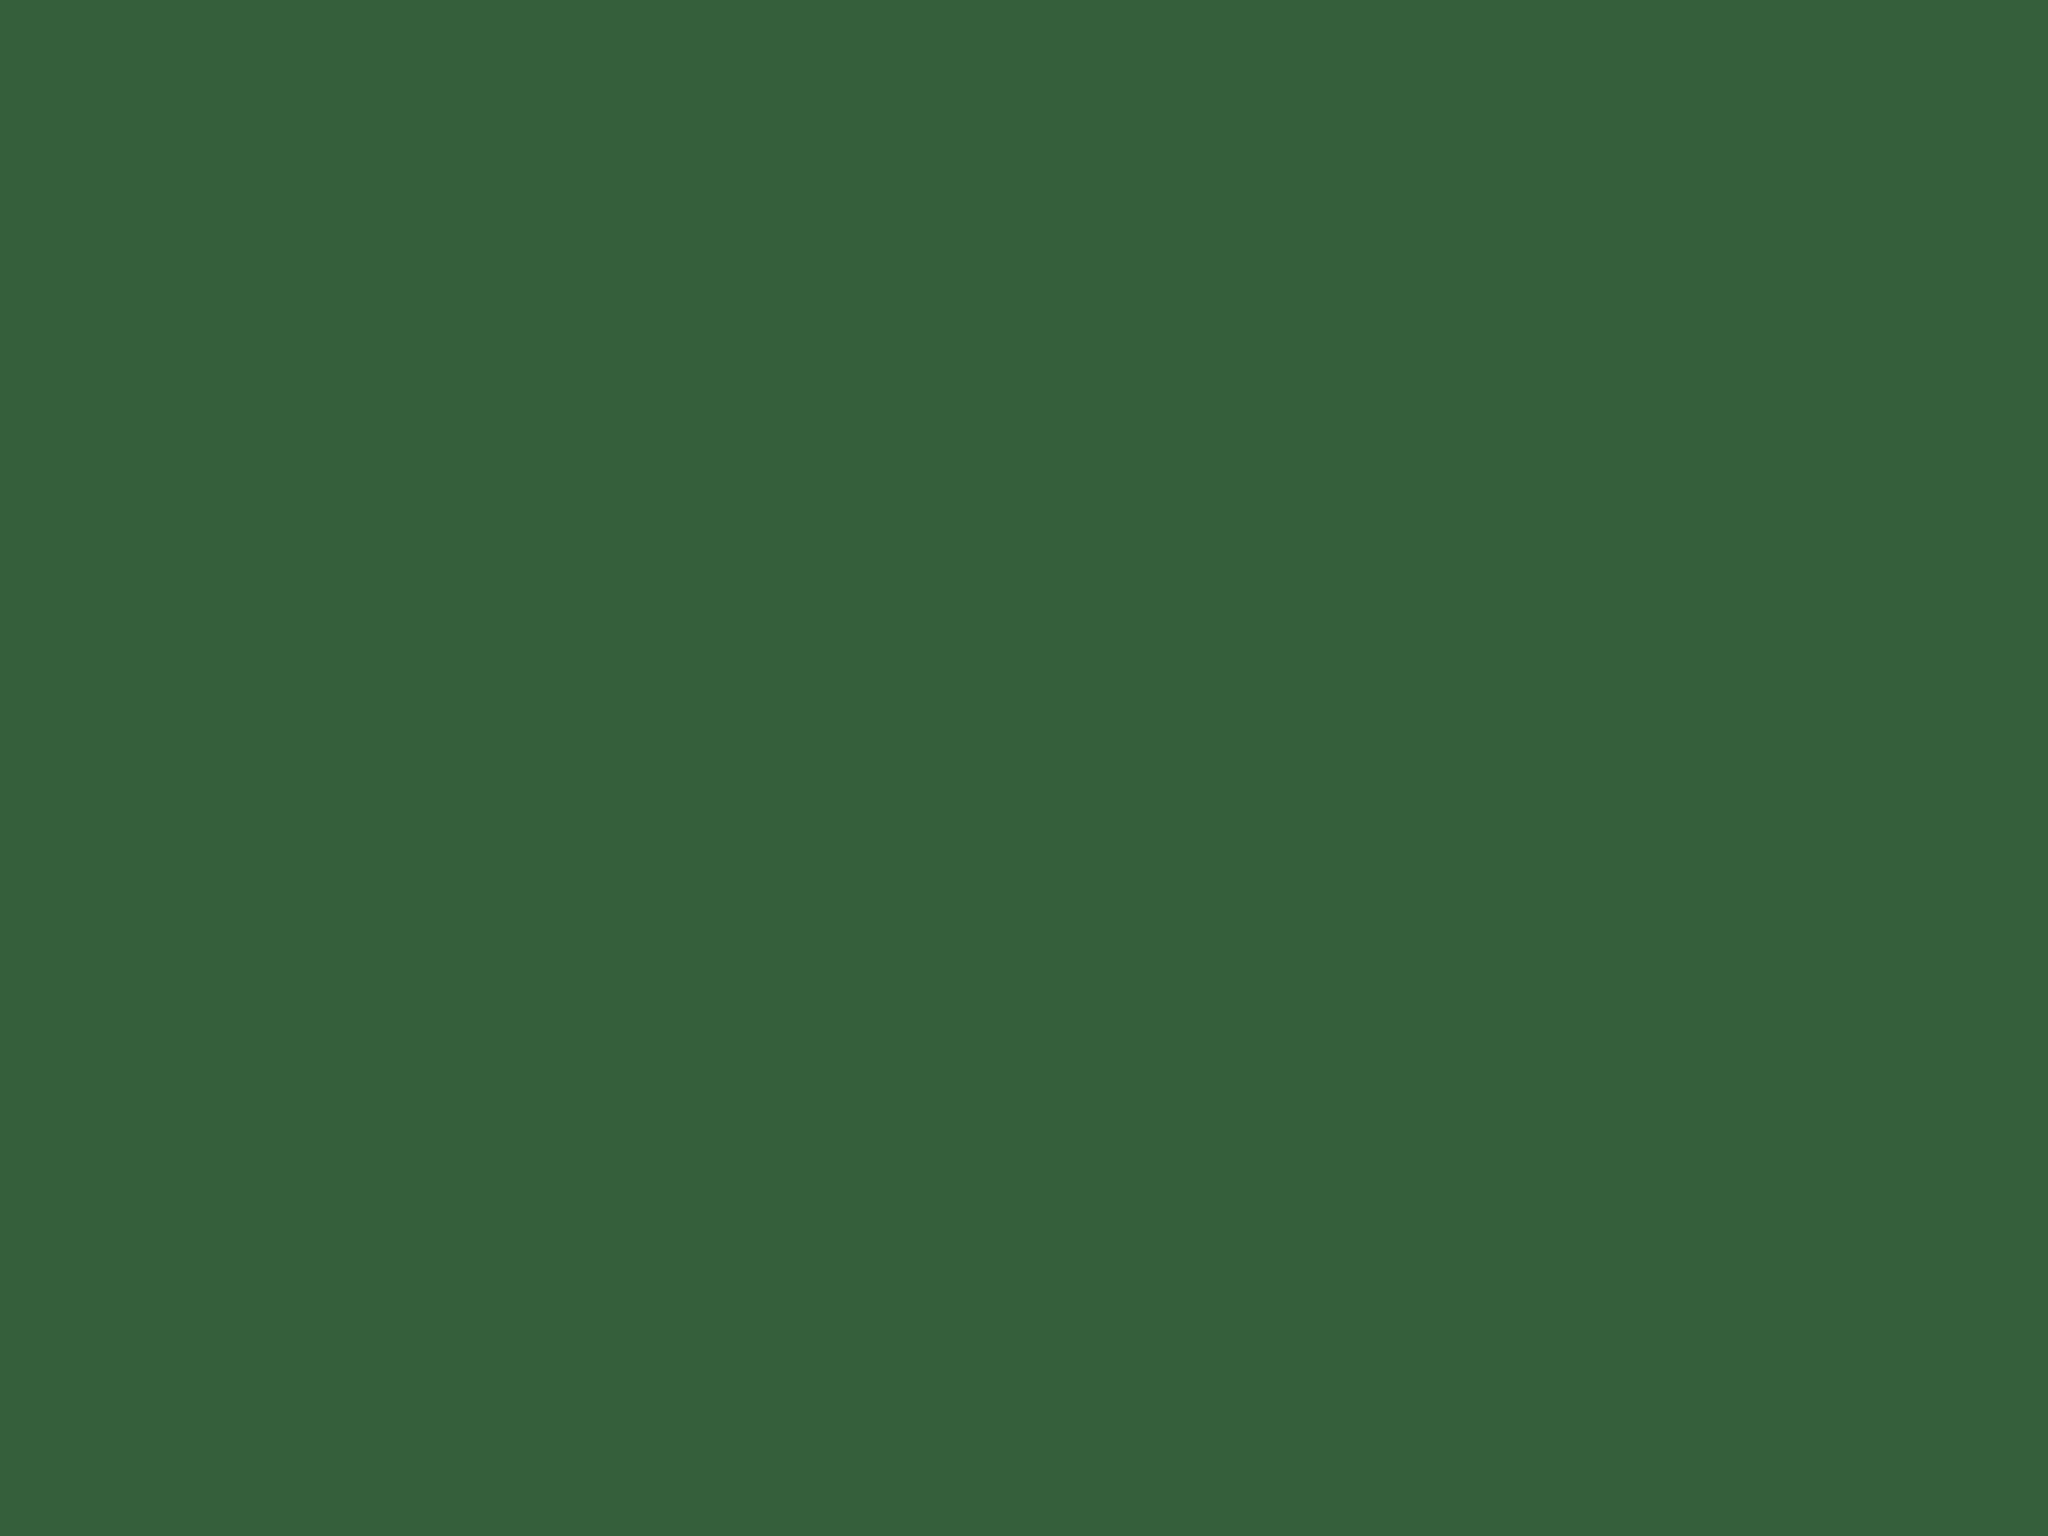 2048x1536 Deep Moss Green Solid Color Background